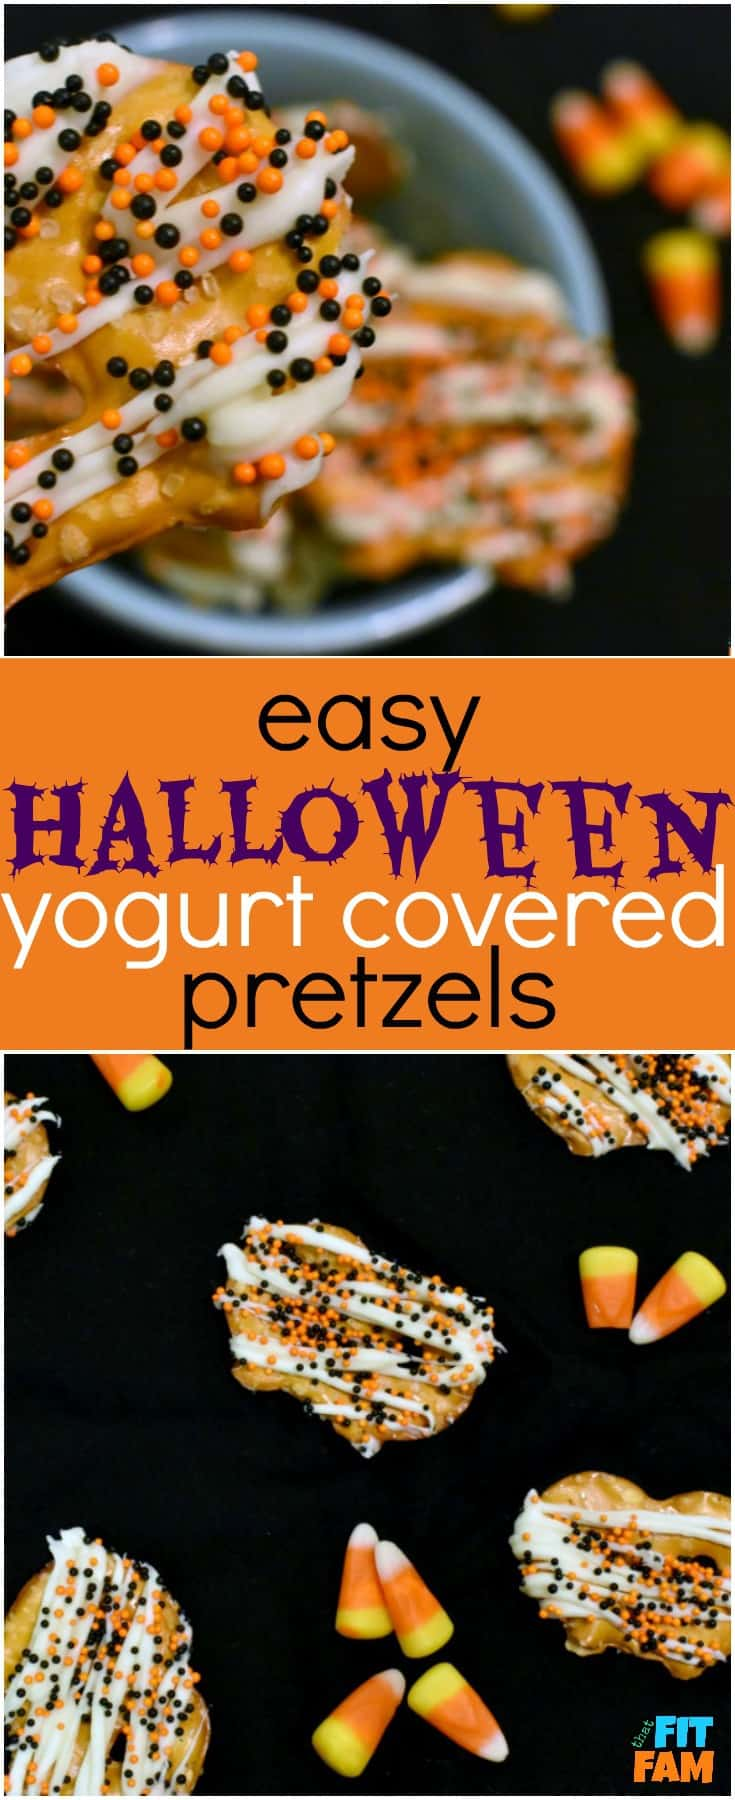 how to make yogurt covered pretzels that are perfect for Halloween party food! They are so easy, yummy, and a great healthy snack! My favorite guilt free Halloween treat!